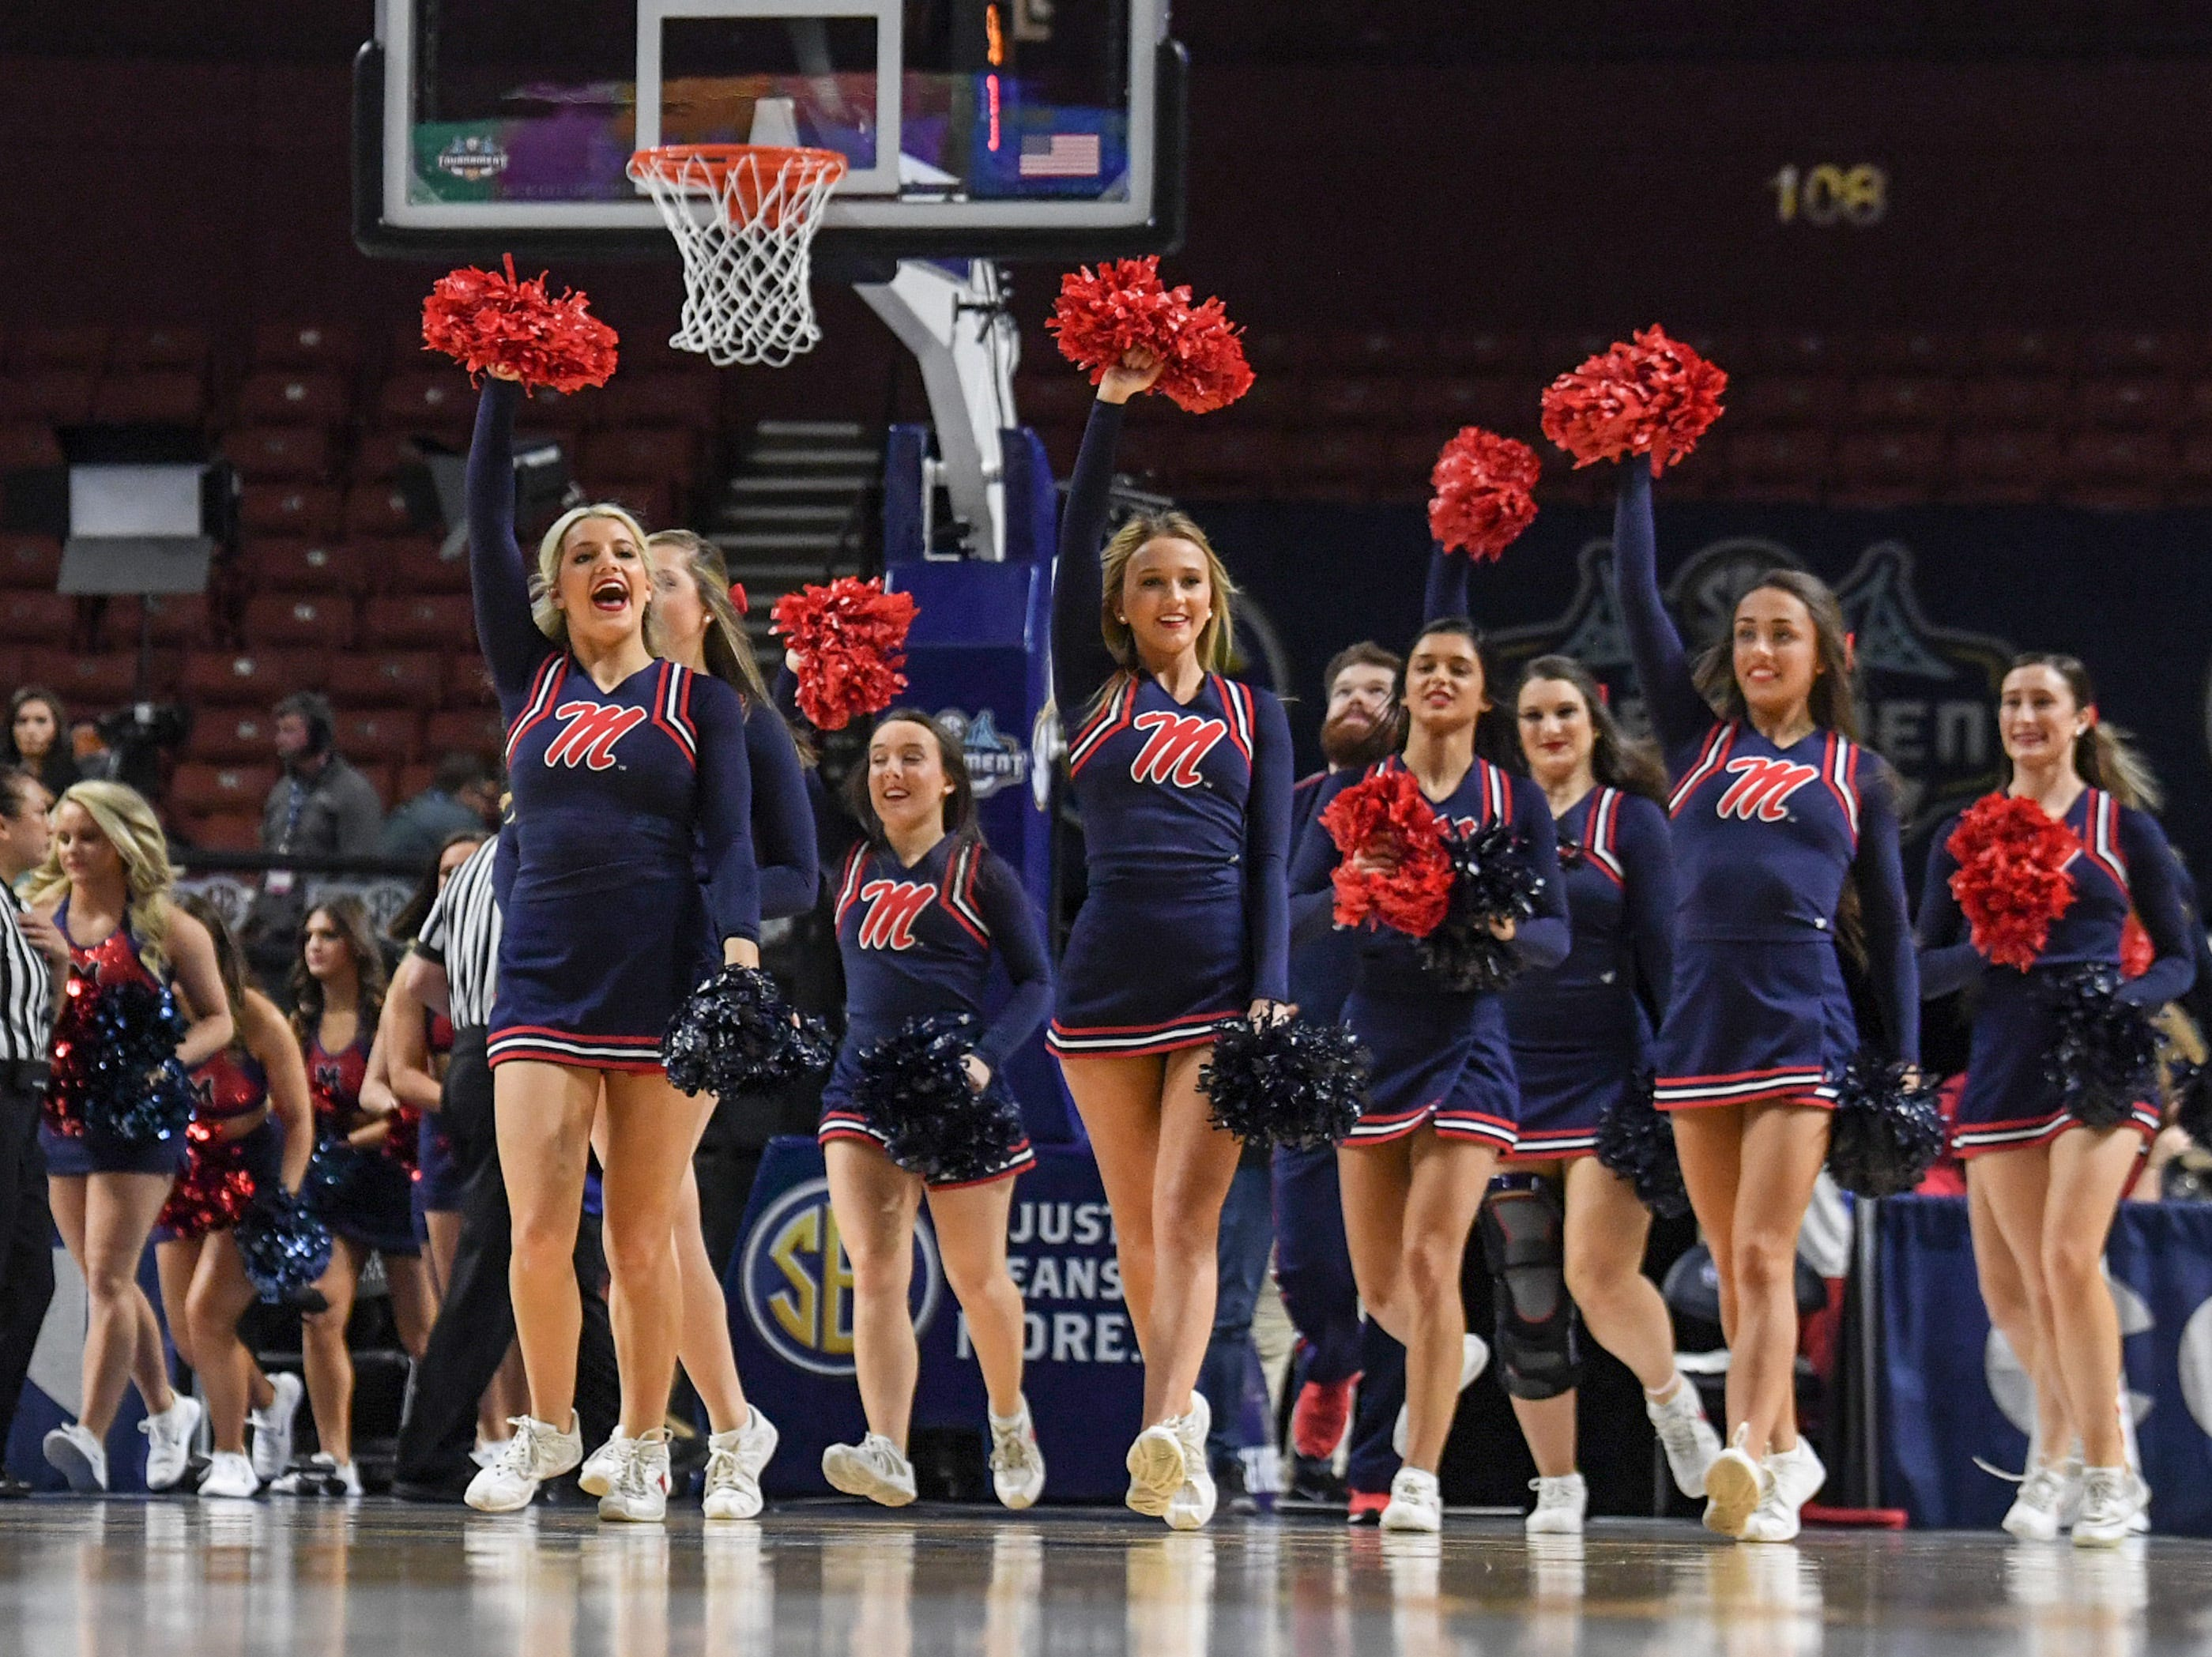 Ole Miss cheerleaders perform at a break during the fourth quarter of the Southeastern Conference Women's Tournament game at Bon Secour Wellness Arena in Greenville Wednesday, March 6, 2019.